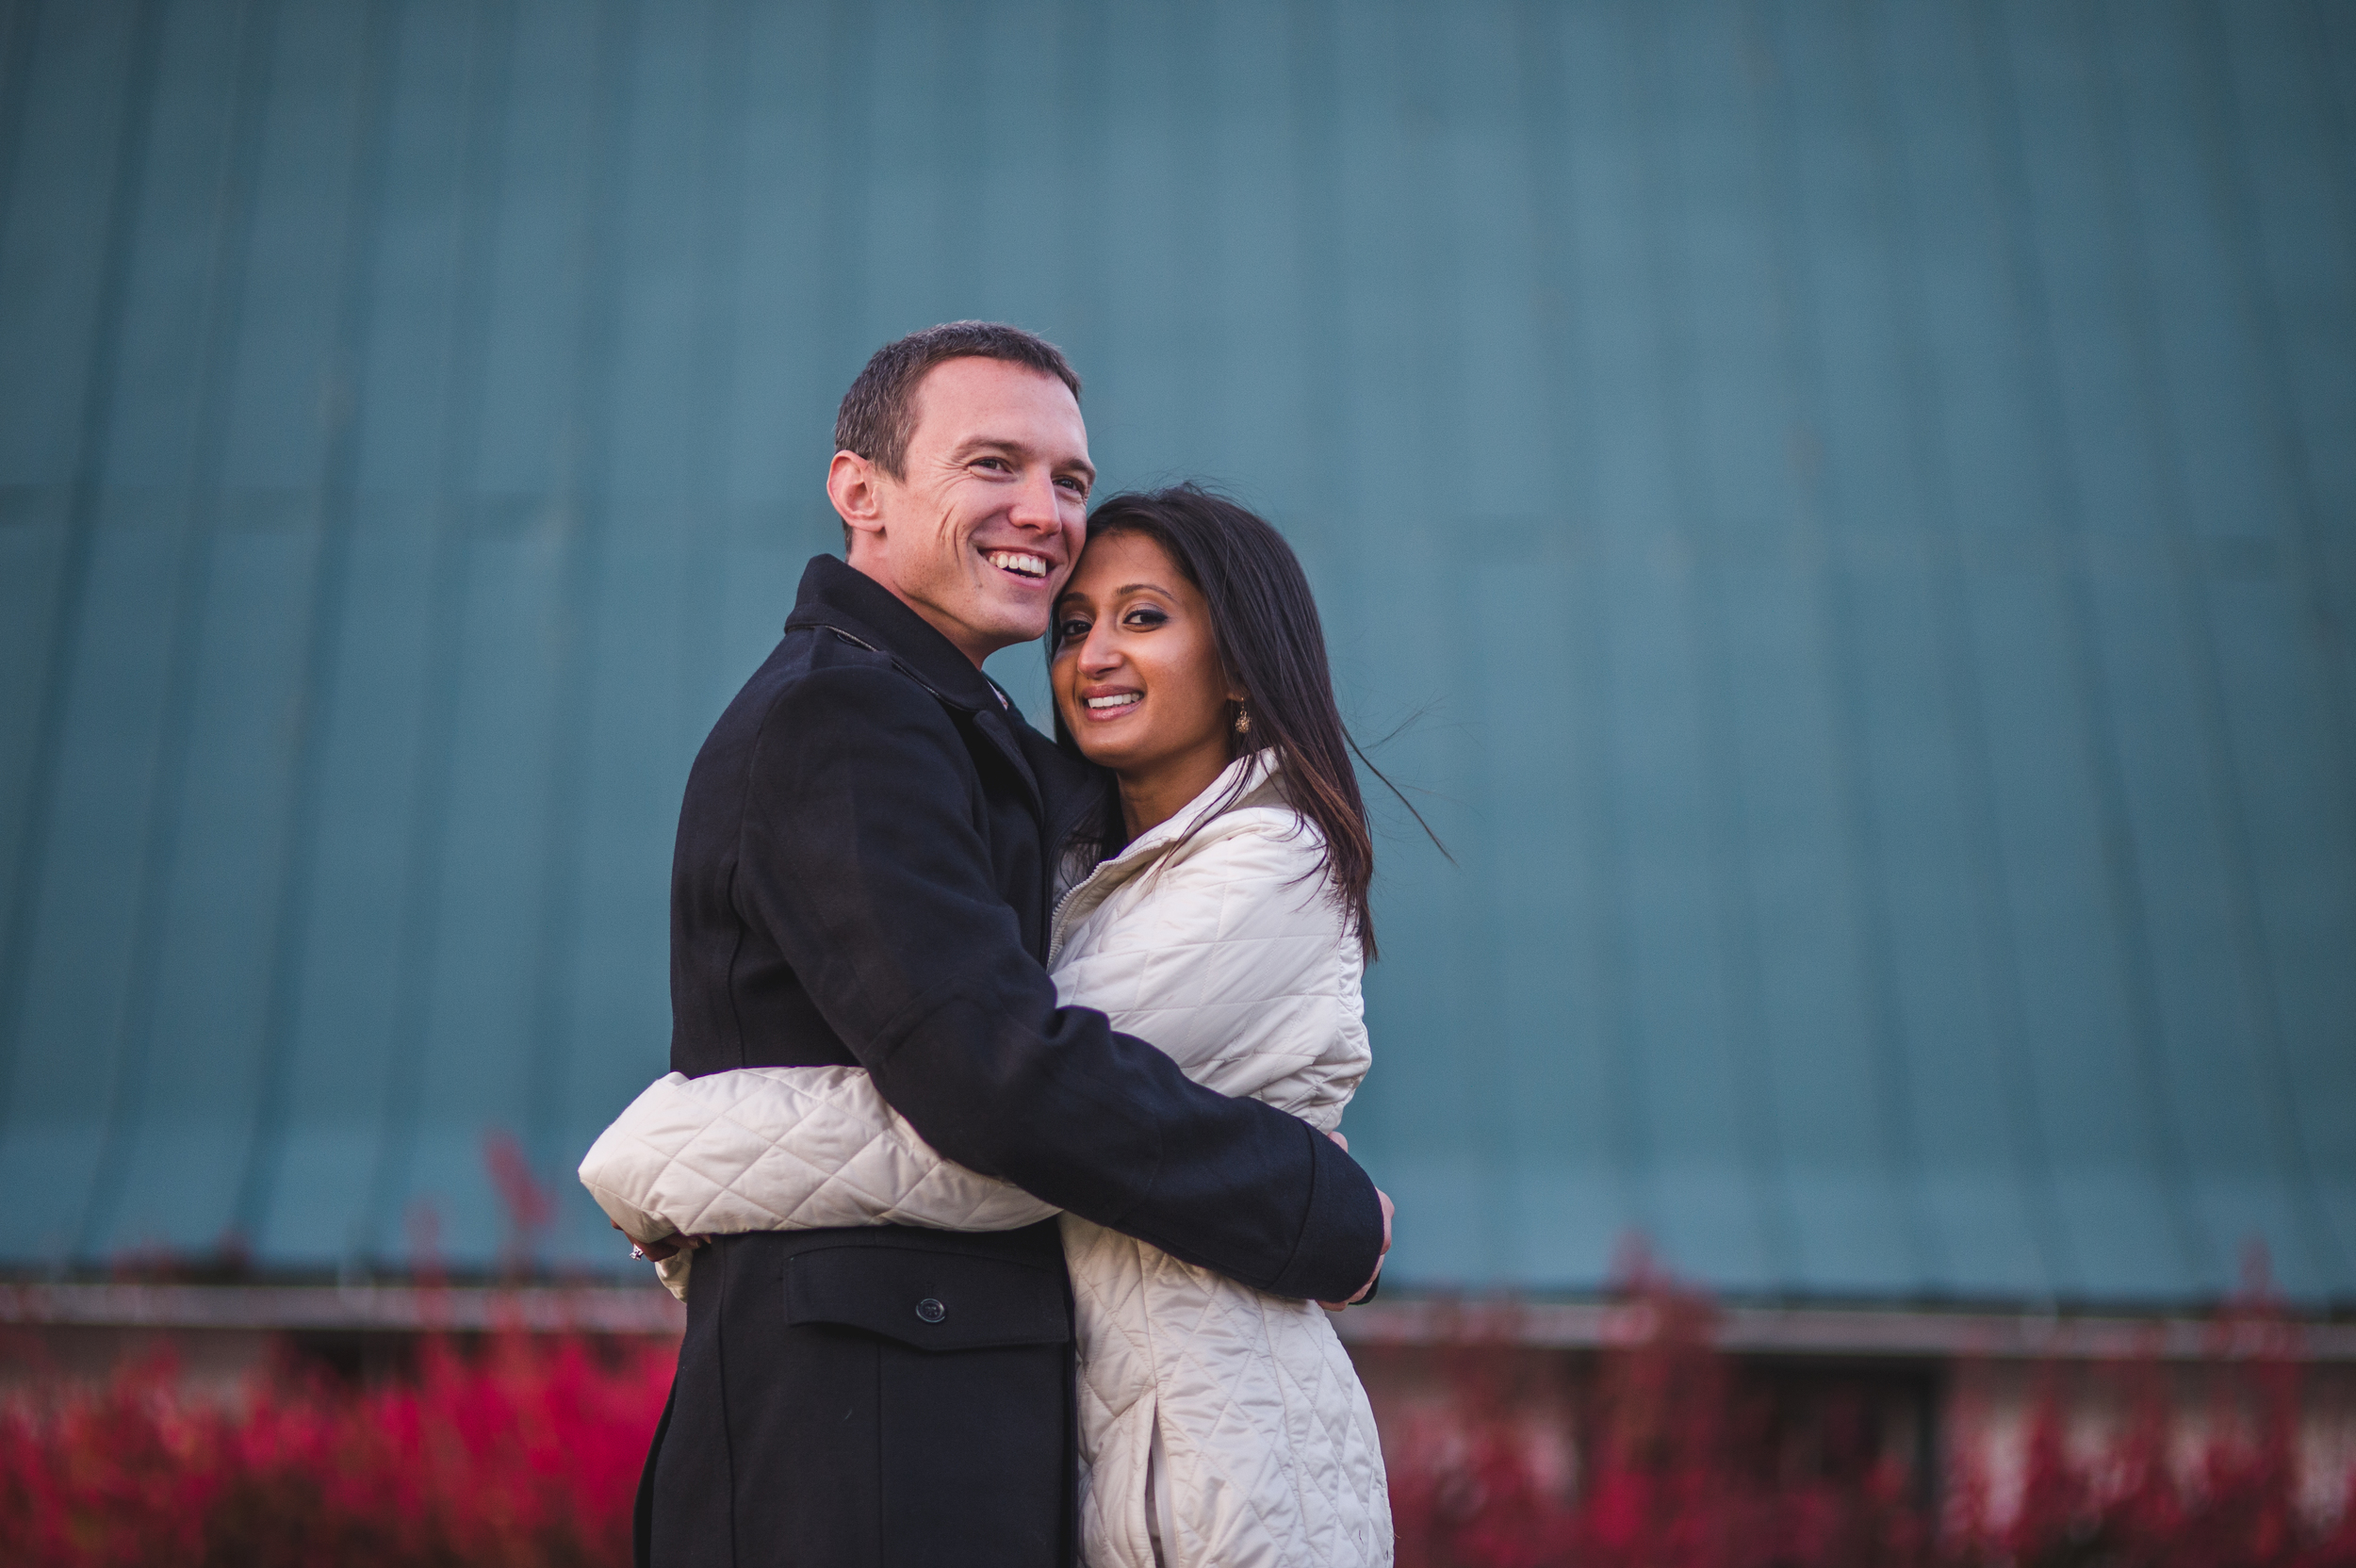 Barn engagement session by Mantas Kubilinskas-21.jpg